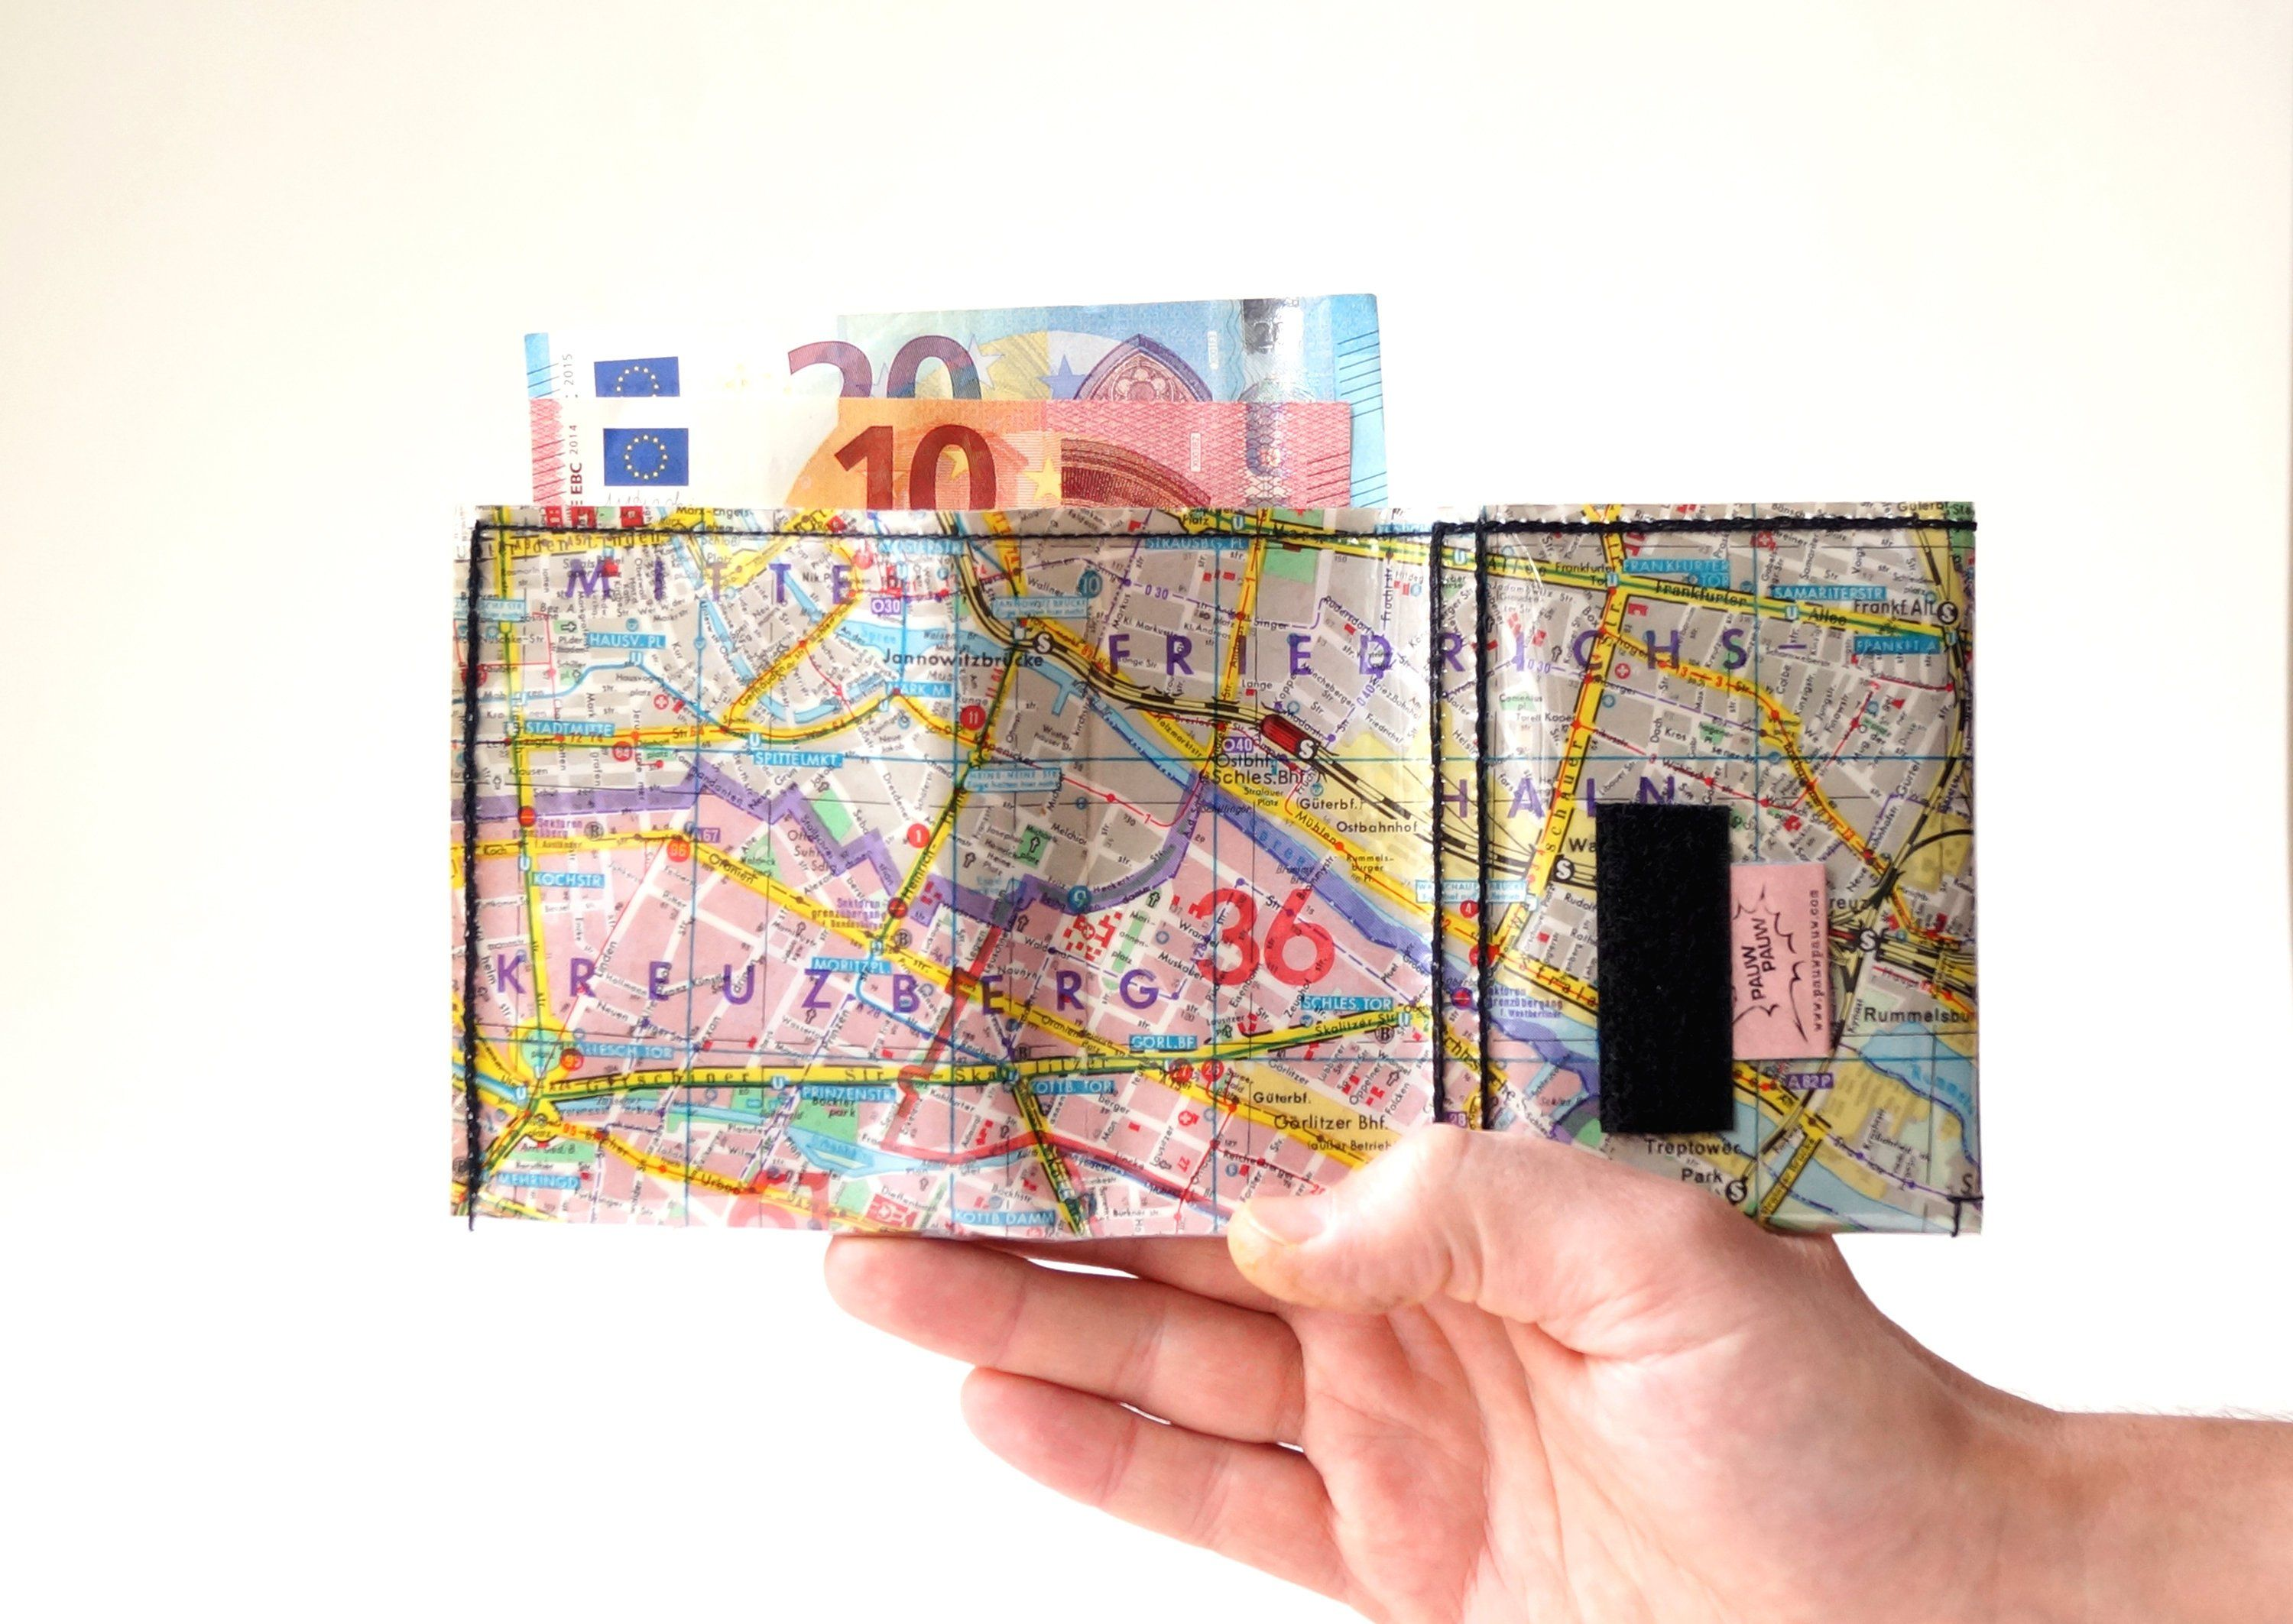 Berlin Center Kreuzberg City Map Wallet Upcycling On Off